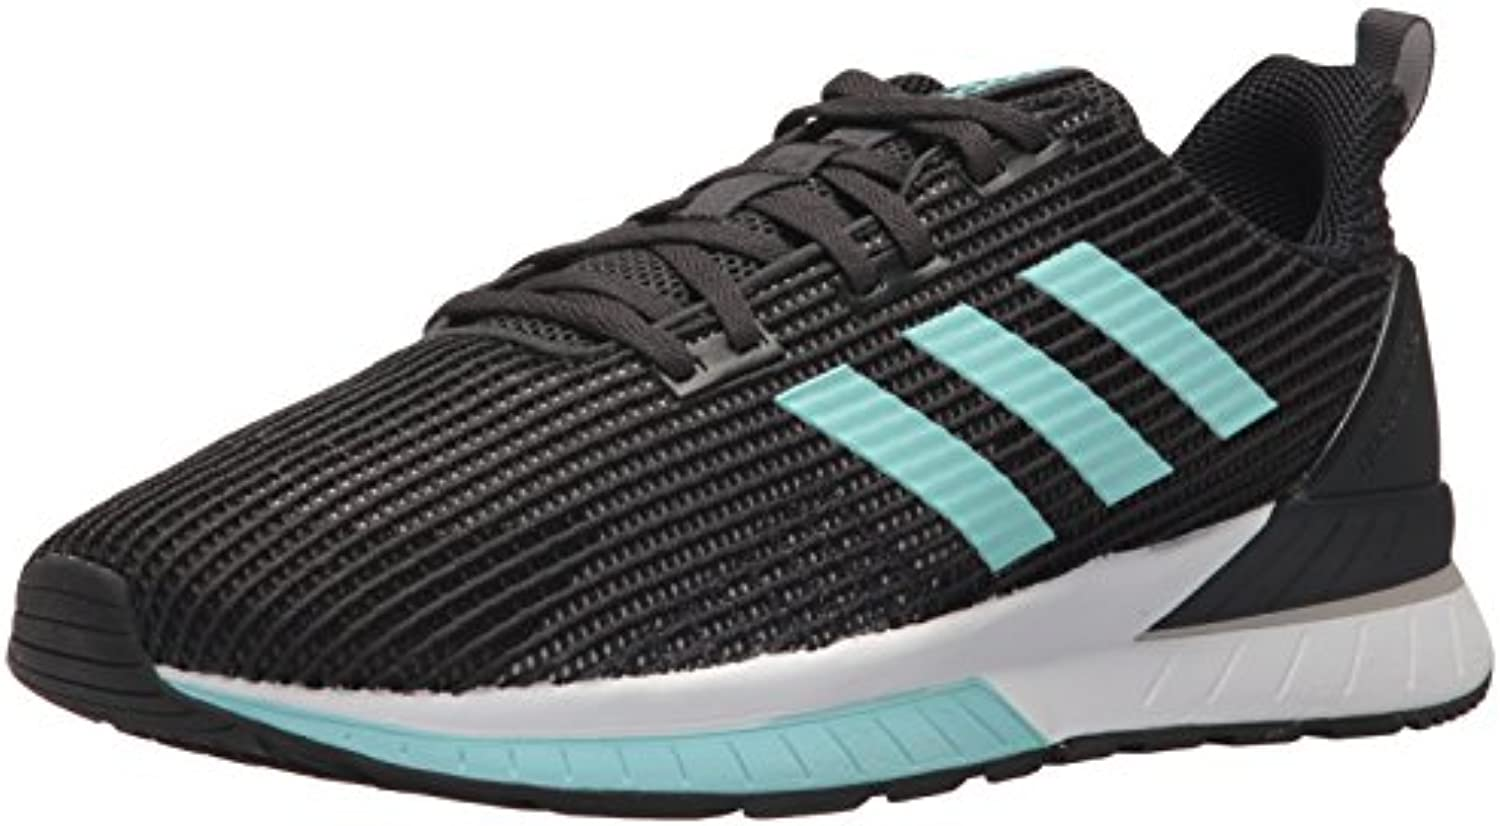 Men's/Women's adidas Women's Questar Tnd Tnd Tnd W Running Shoe Adequate supply and timely delivery Affordable Modern and elegant GH96723 178609